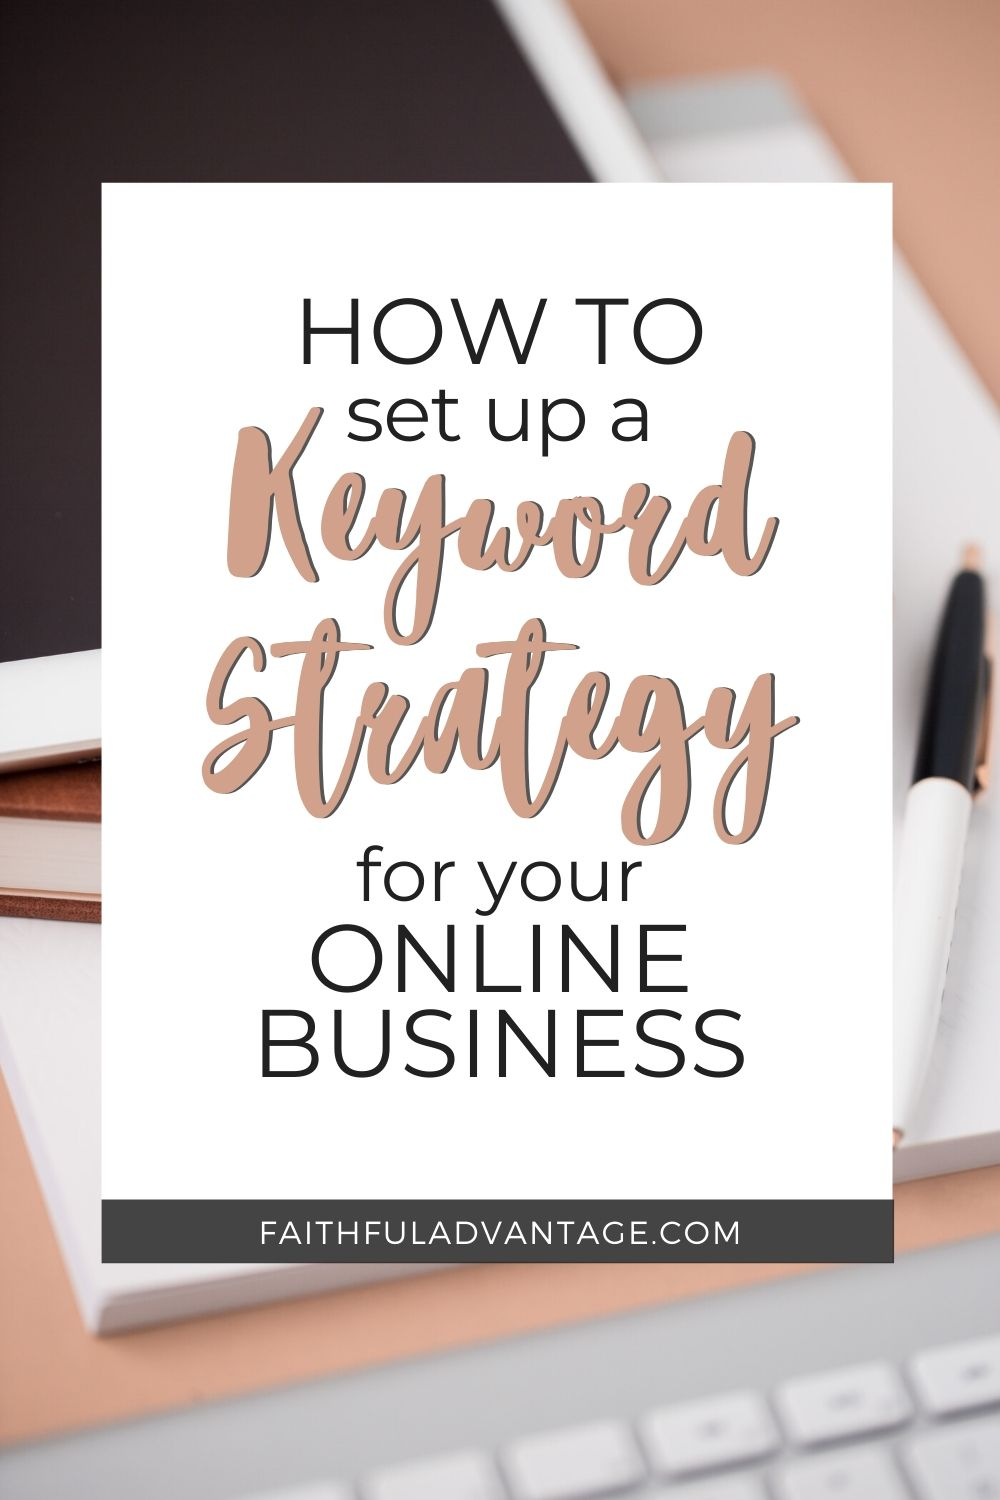 How to develop a keyword strategy for your online business_FaithfulAdvantage.com